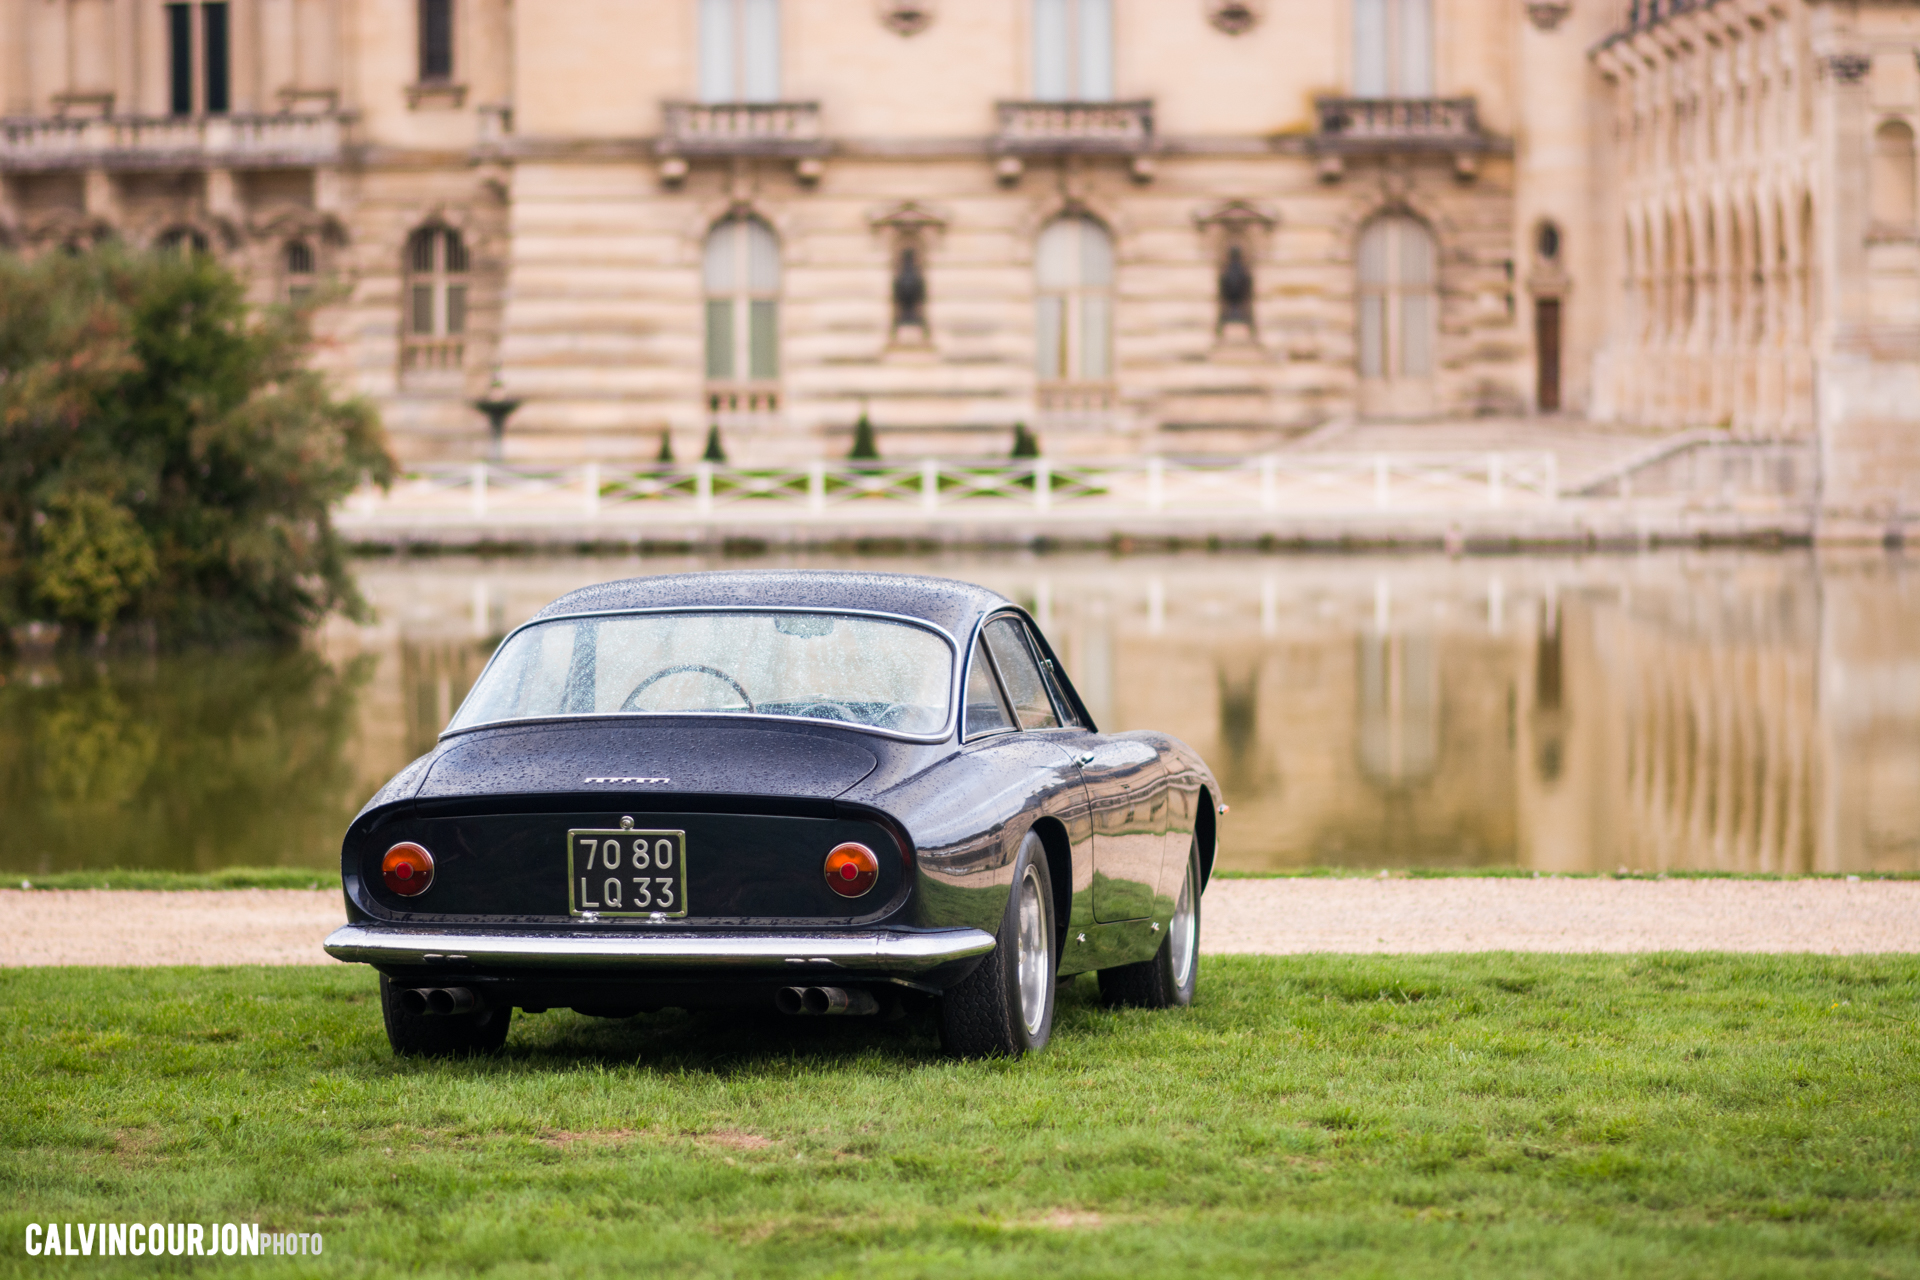 Ferrari admire le château - Chantilly 2015 – photo Calvin Courjon